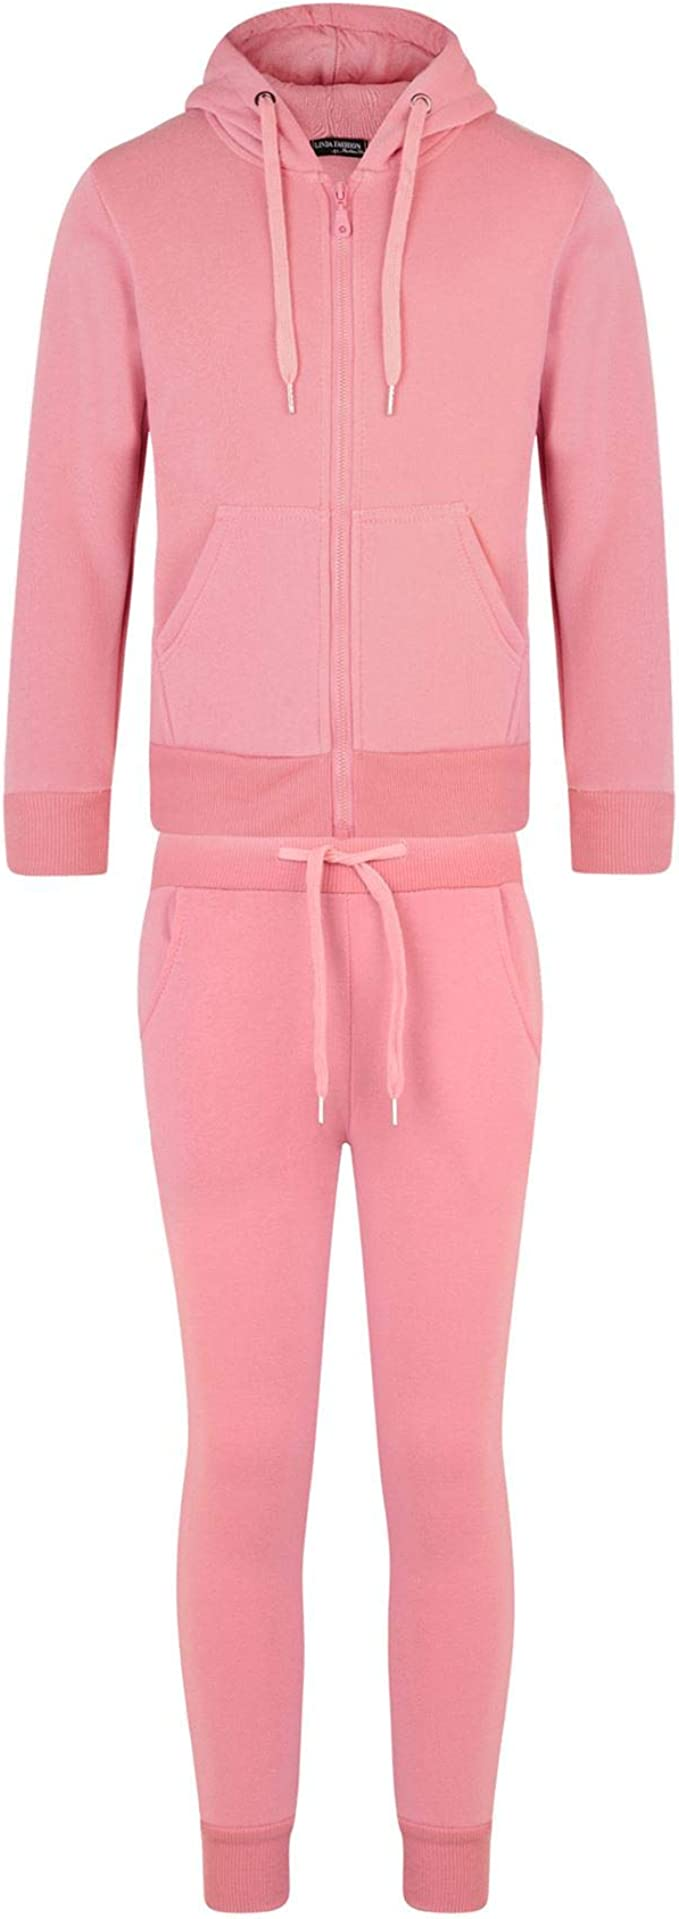 LotMart Kids Plain Tracksuit Trousers in Pink 15-16 Years